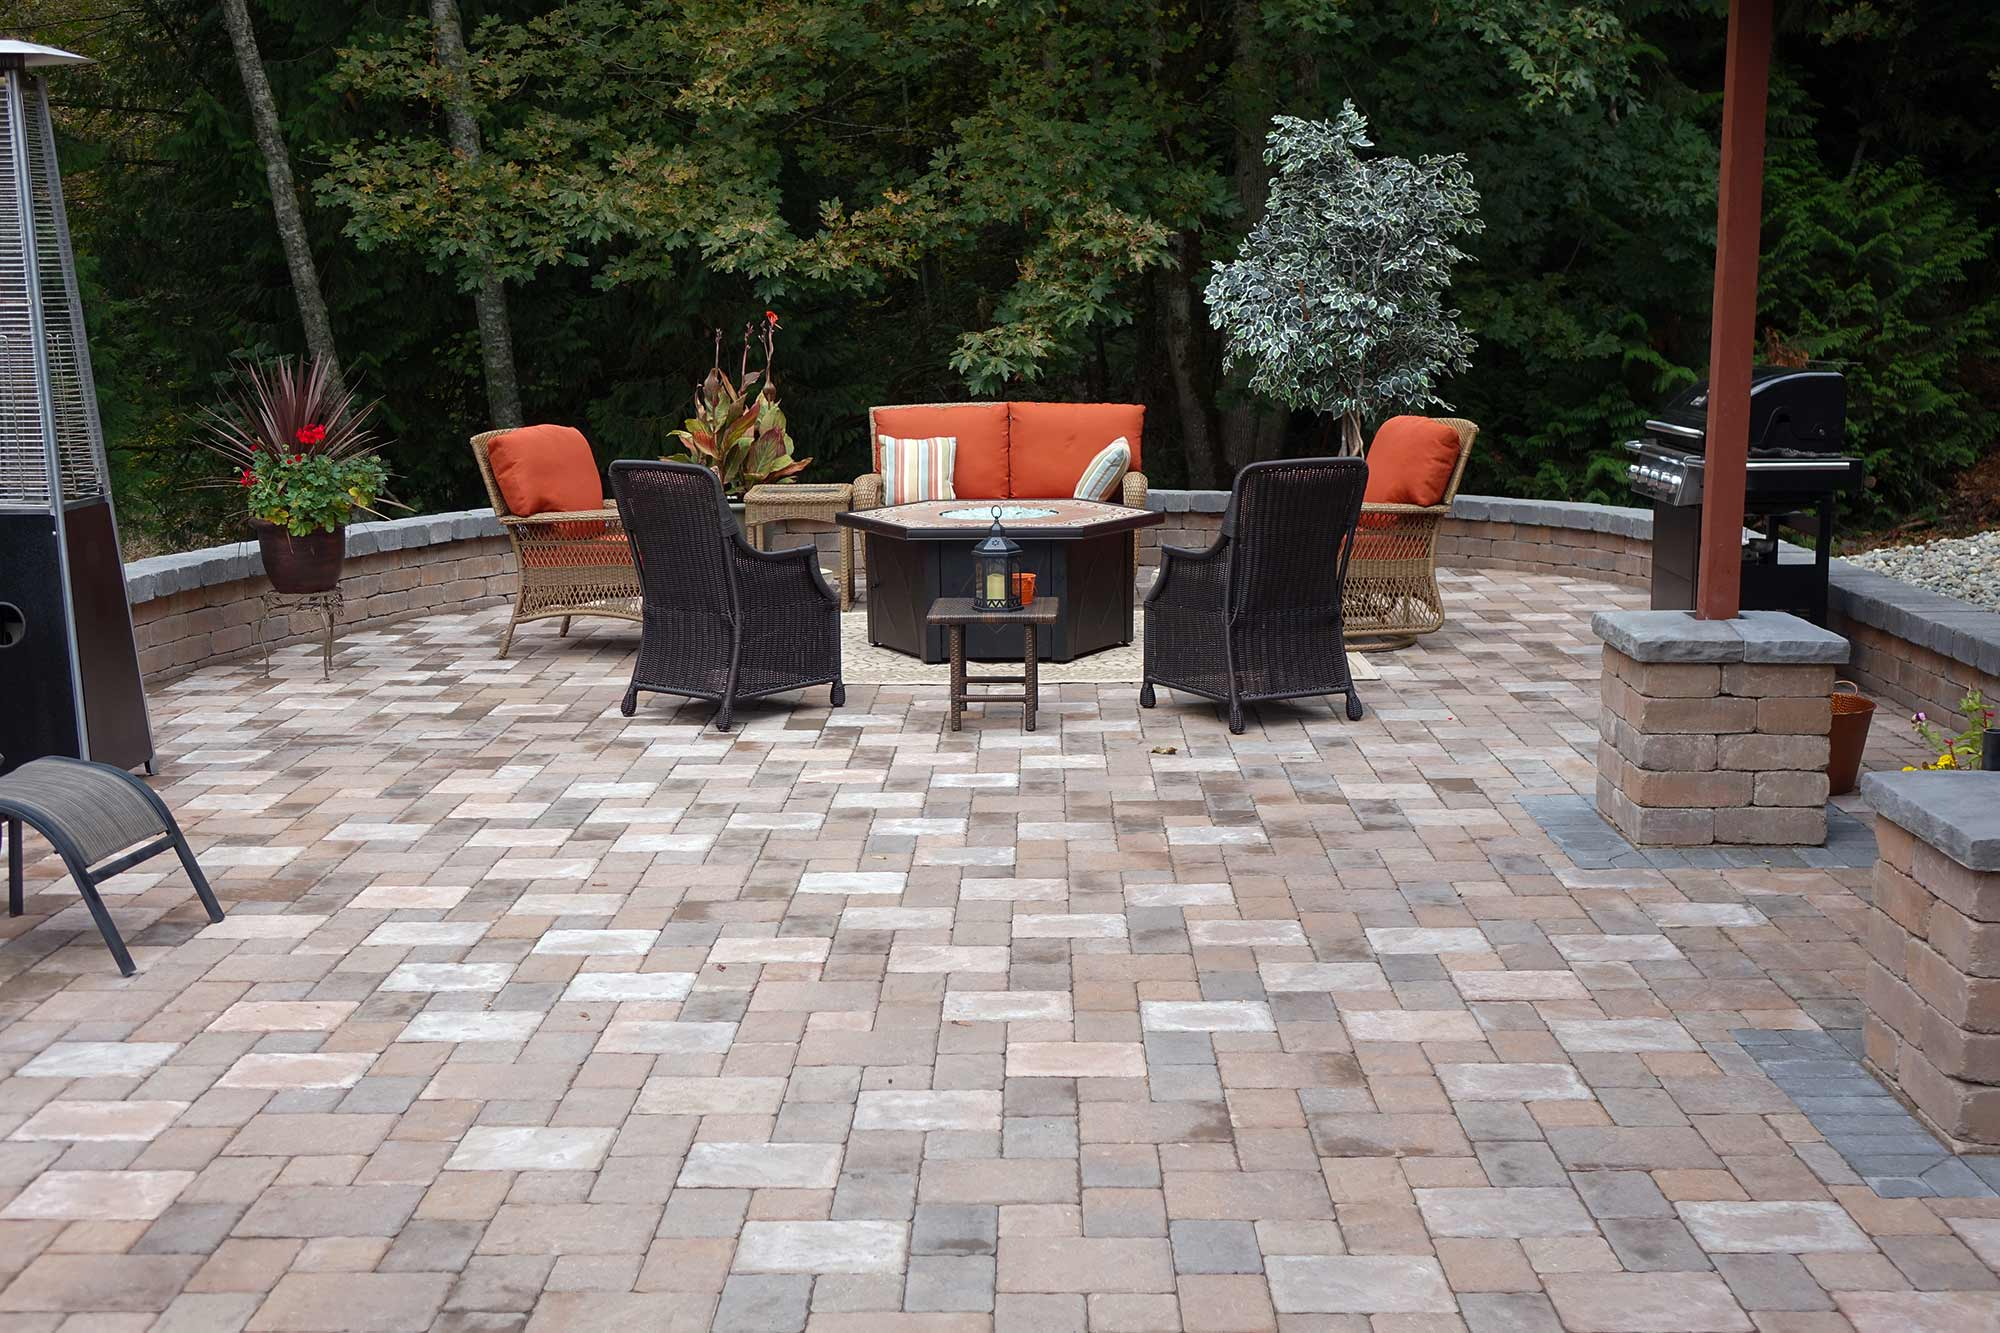 Dominion Slate paver patio with Tuscan stone seating wall